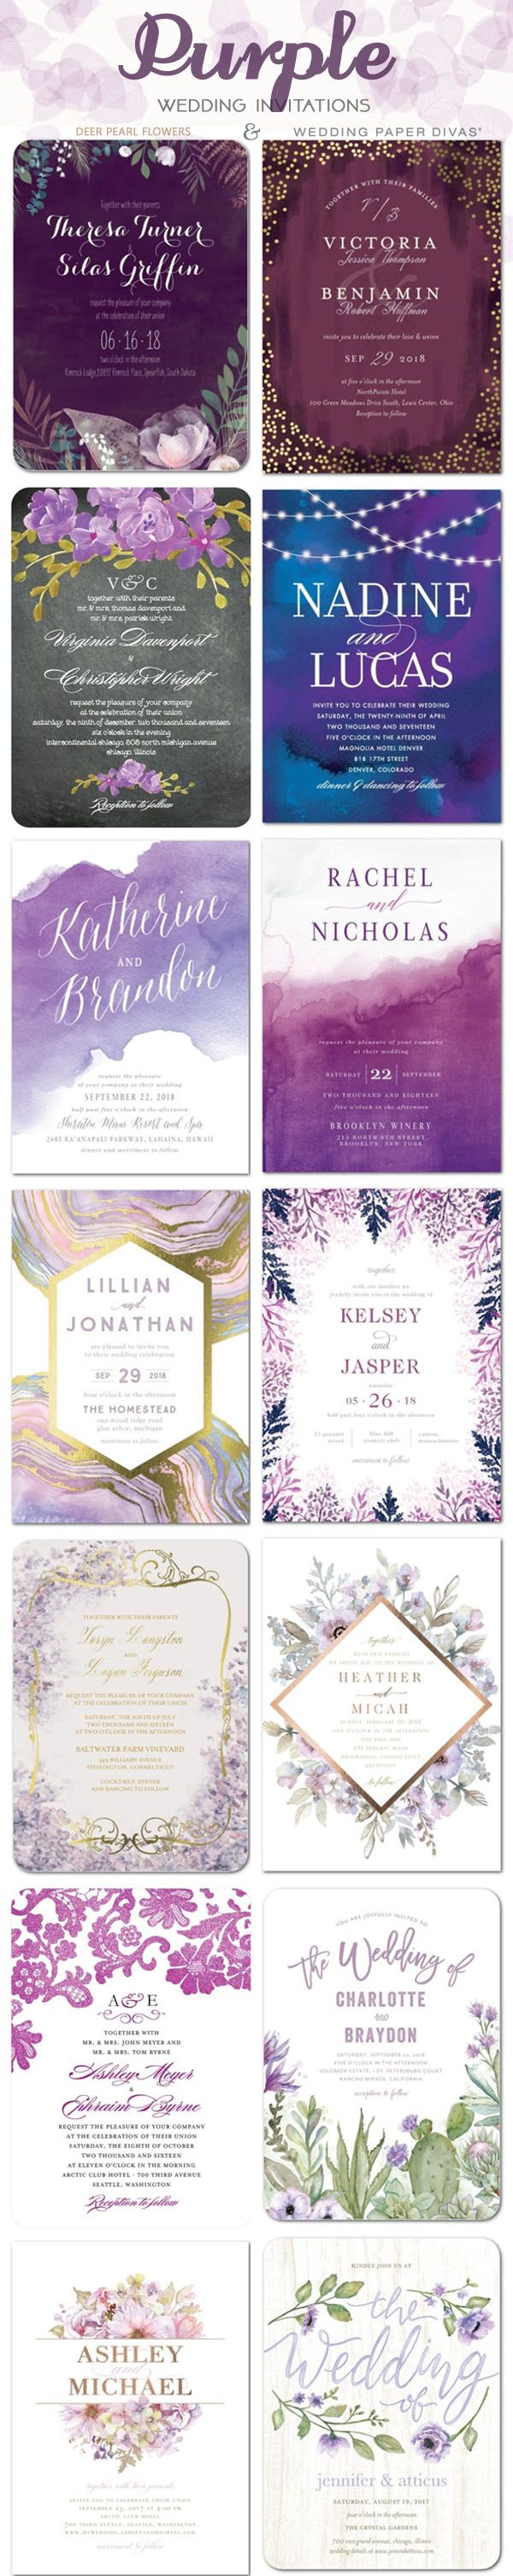 Purple wedding color ideas - Purple wedding invitations / http://www.deerpearlflowers.com/wedding-paper-divas-wedding-invitations/2/